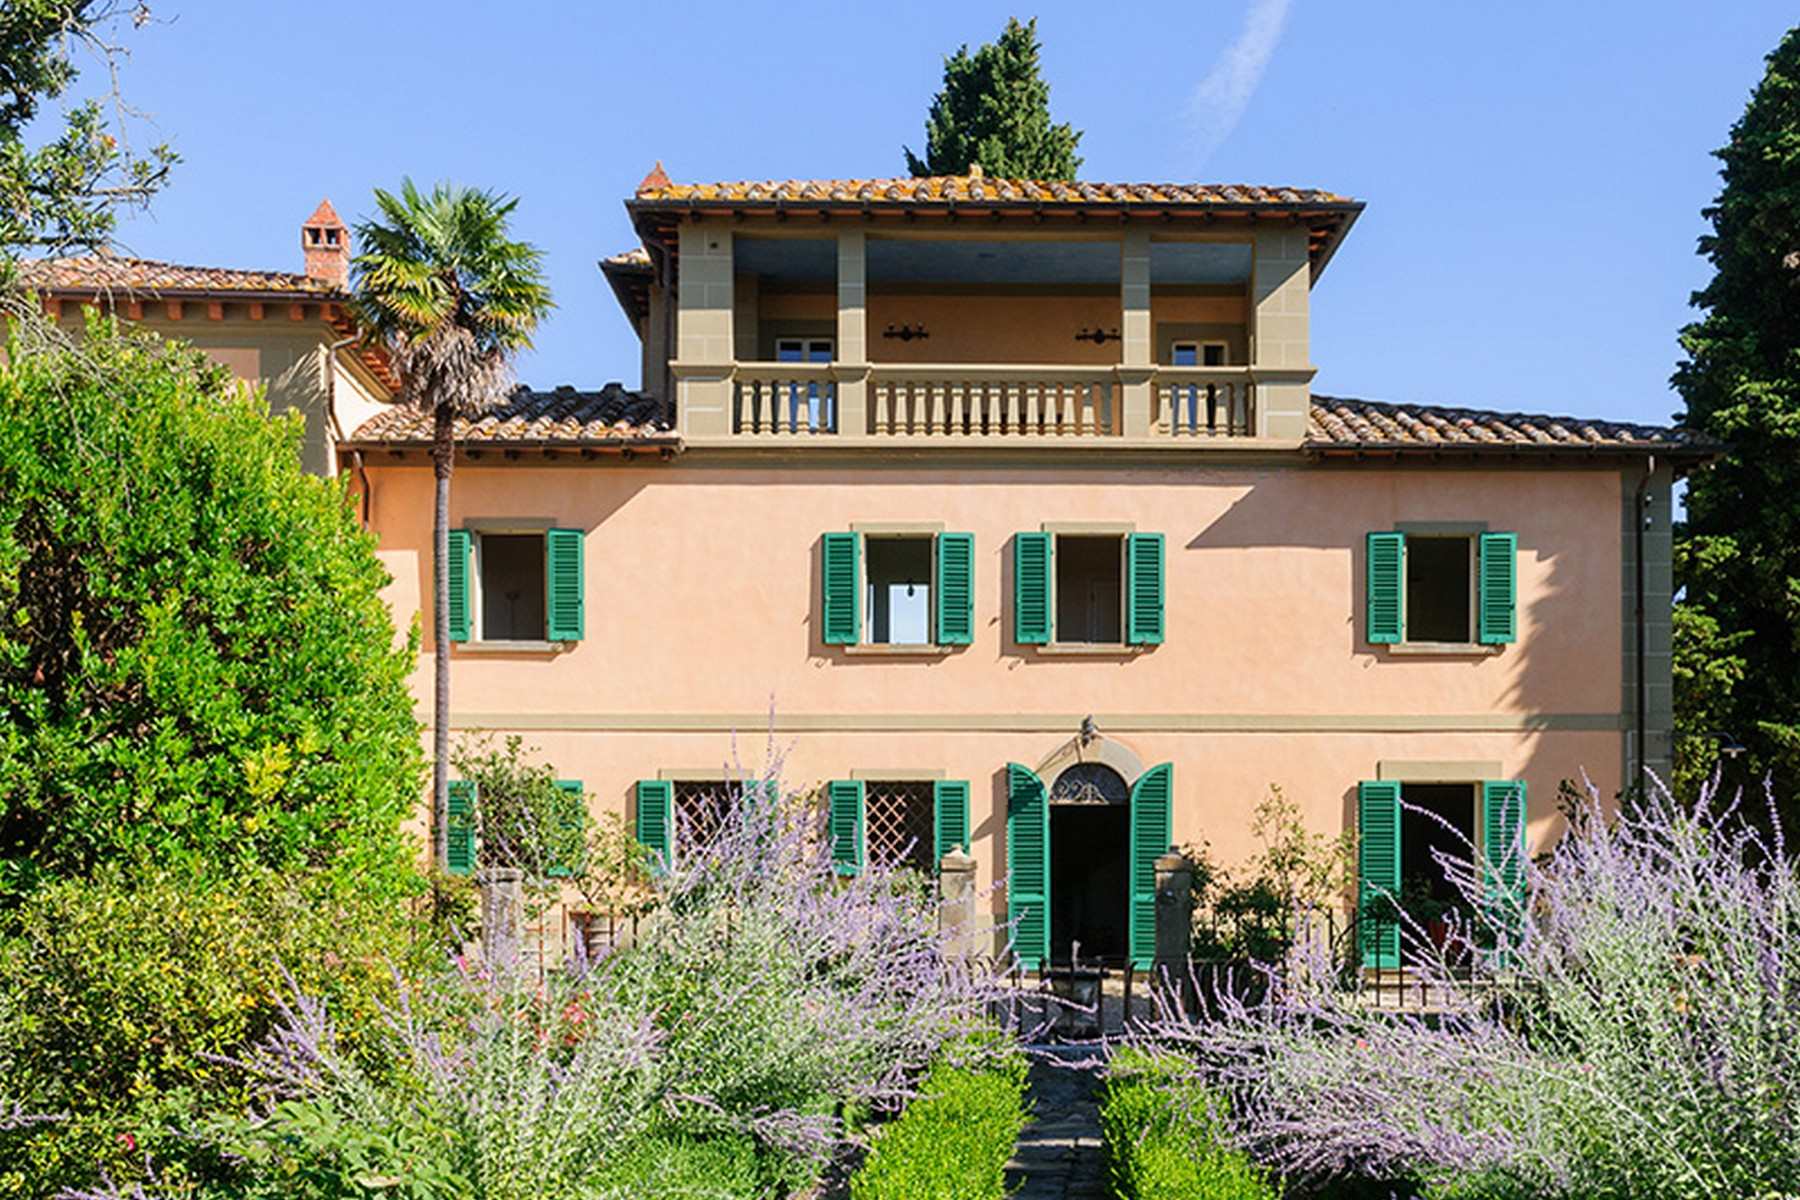 Single Family Home for Sale at Splendid villa between Siena and Arezzo Monte San Savino Arezzo, Arezzo 52048 Italy